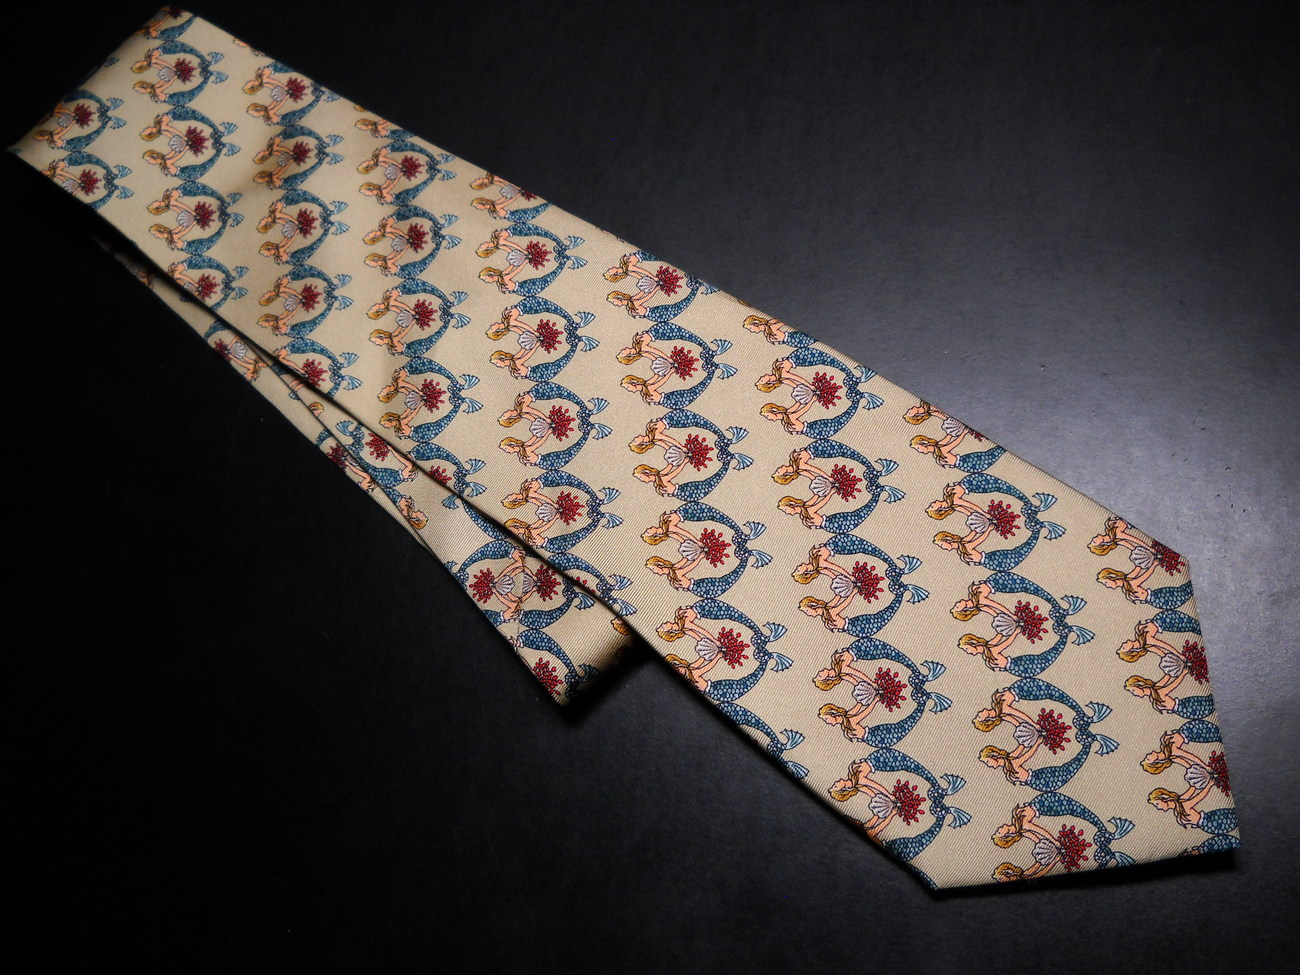 Tie mystic seaport museum pale green with mermaids 01